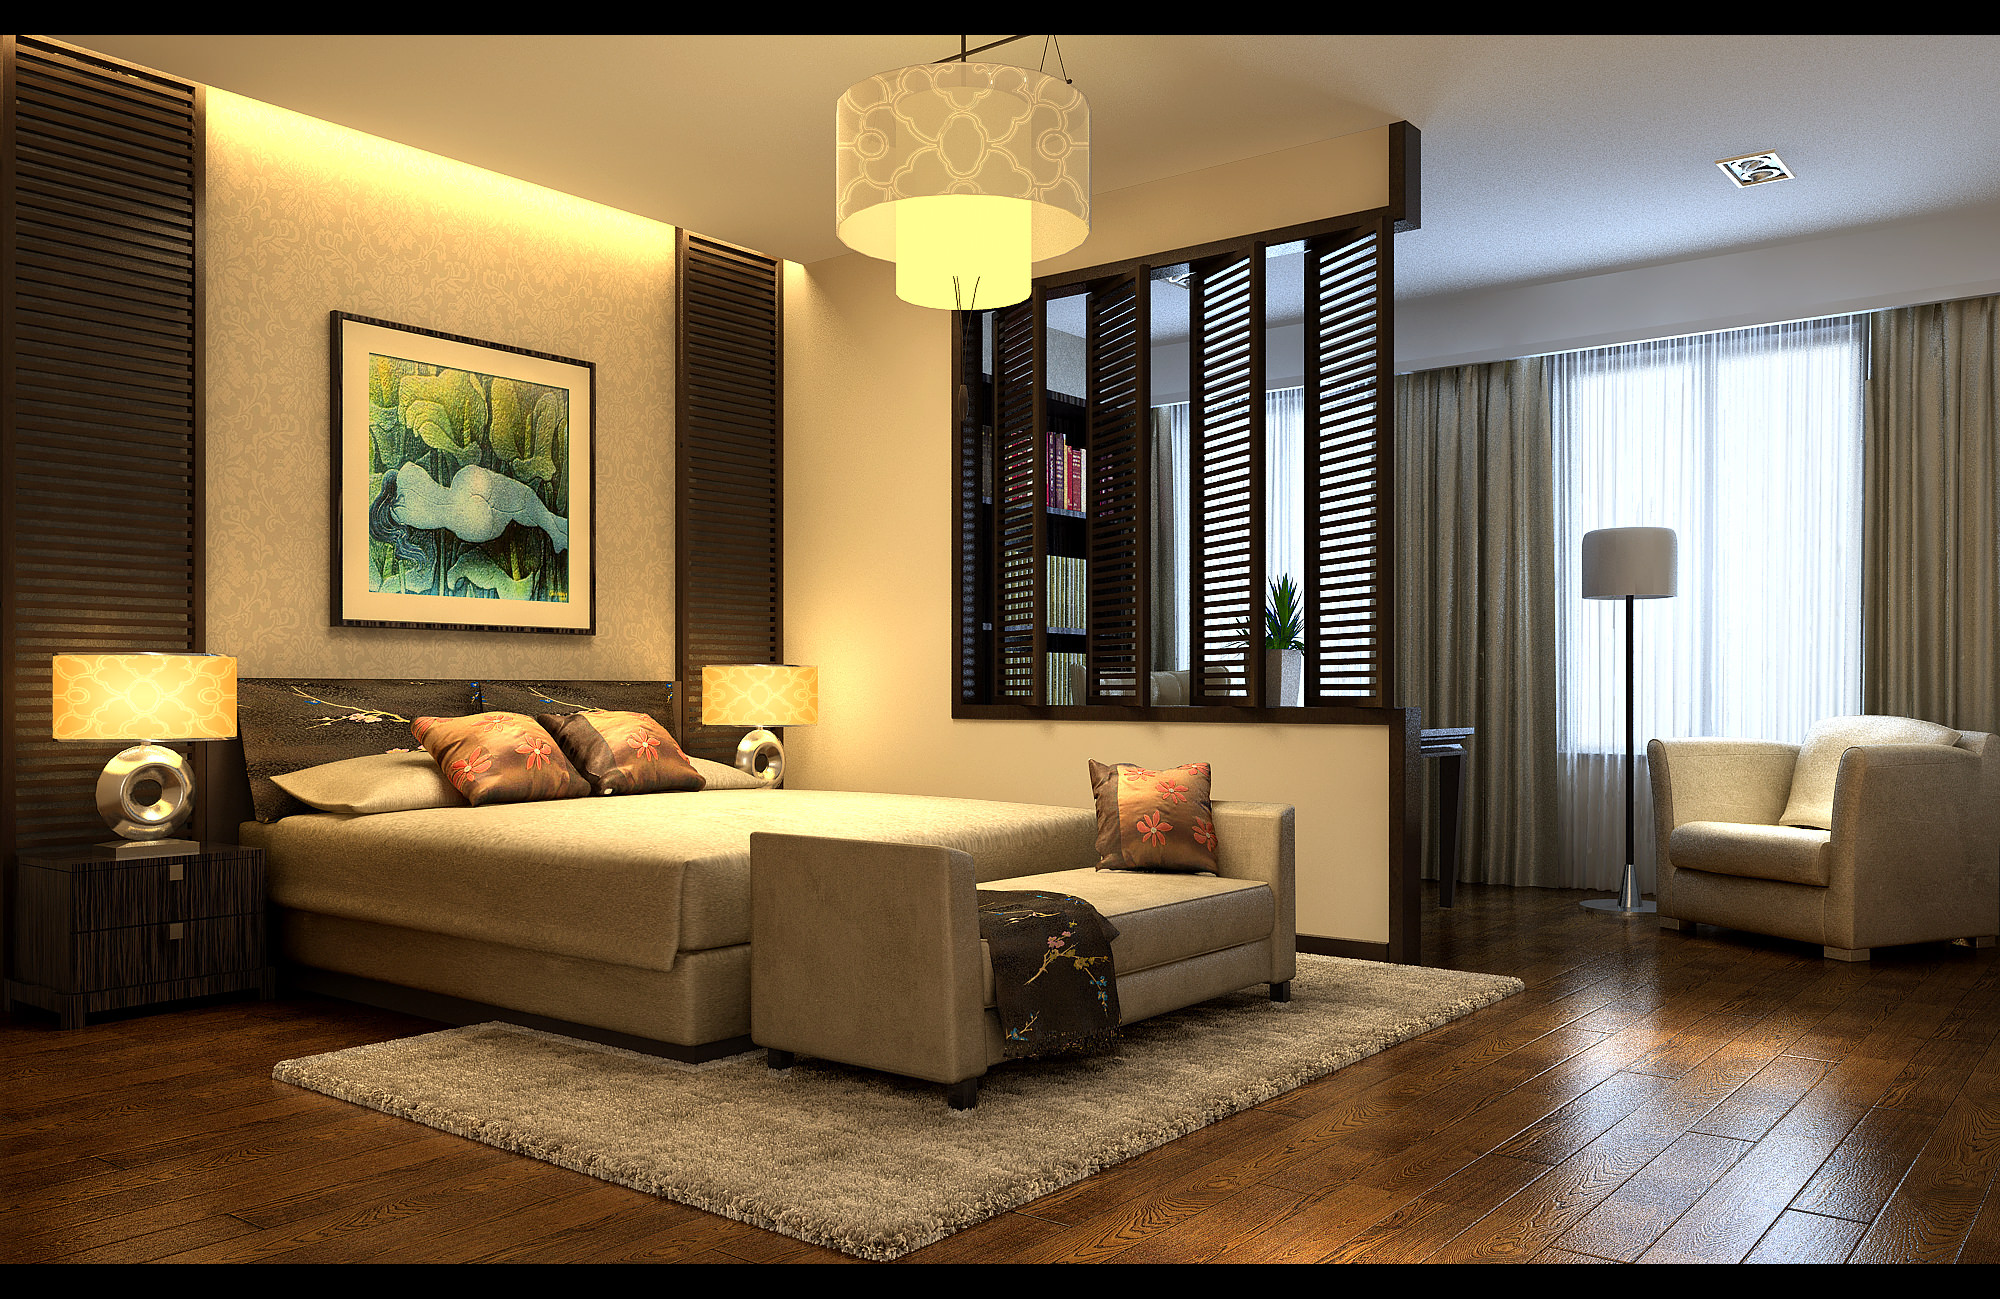 Modern bedroom with wooden floor fully furnished 3d model for Bedroom designs 3d model